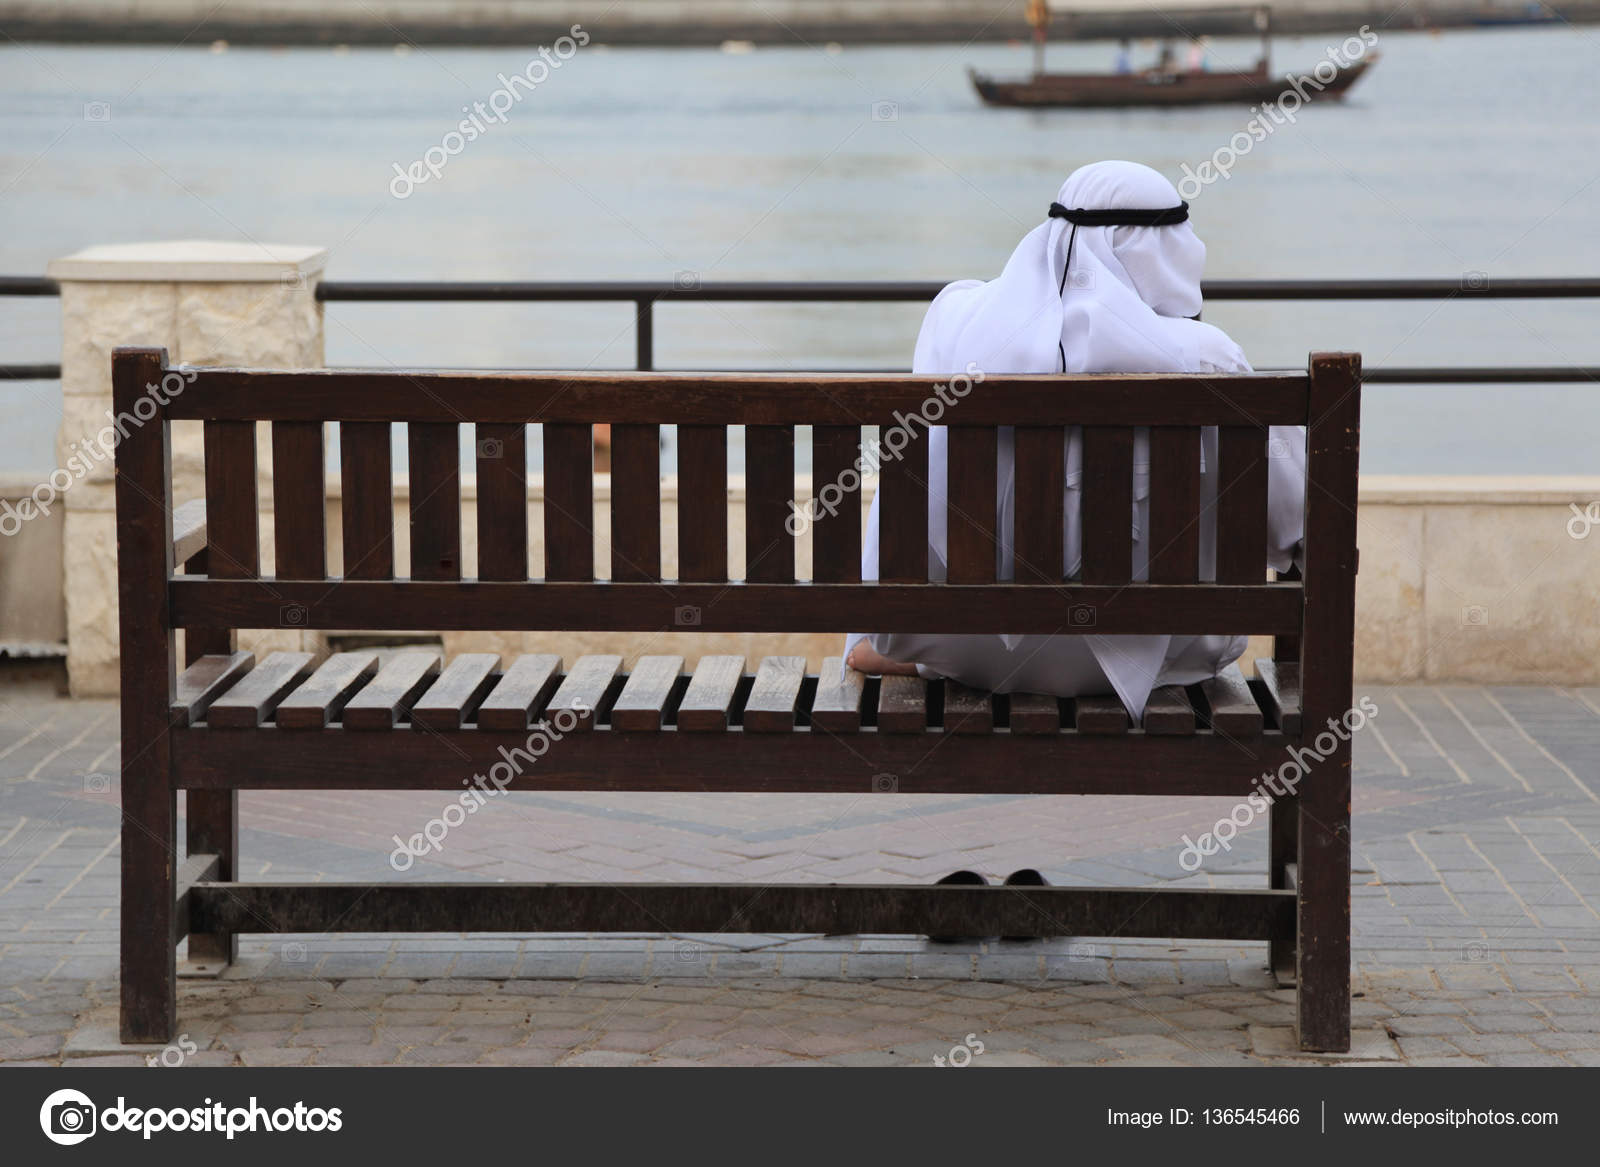 Groovy Arab Man In Dishdasha Sitting On A Wooden Bench At Creek Pdpeps Interior Chair Design Pdpepsorg